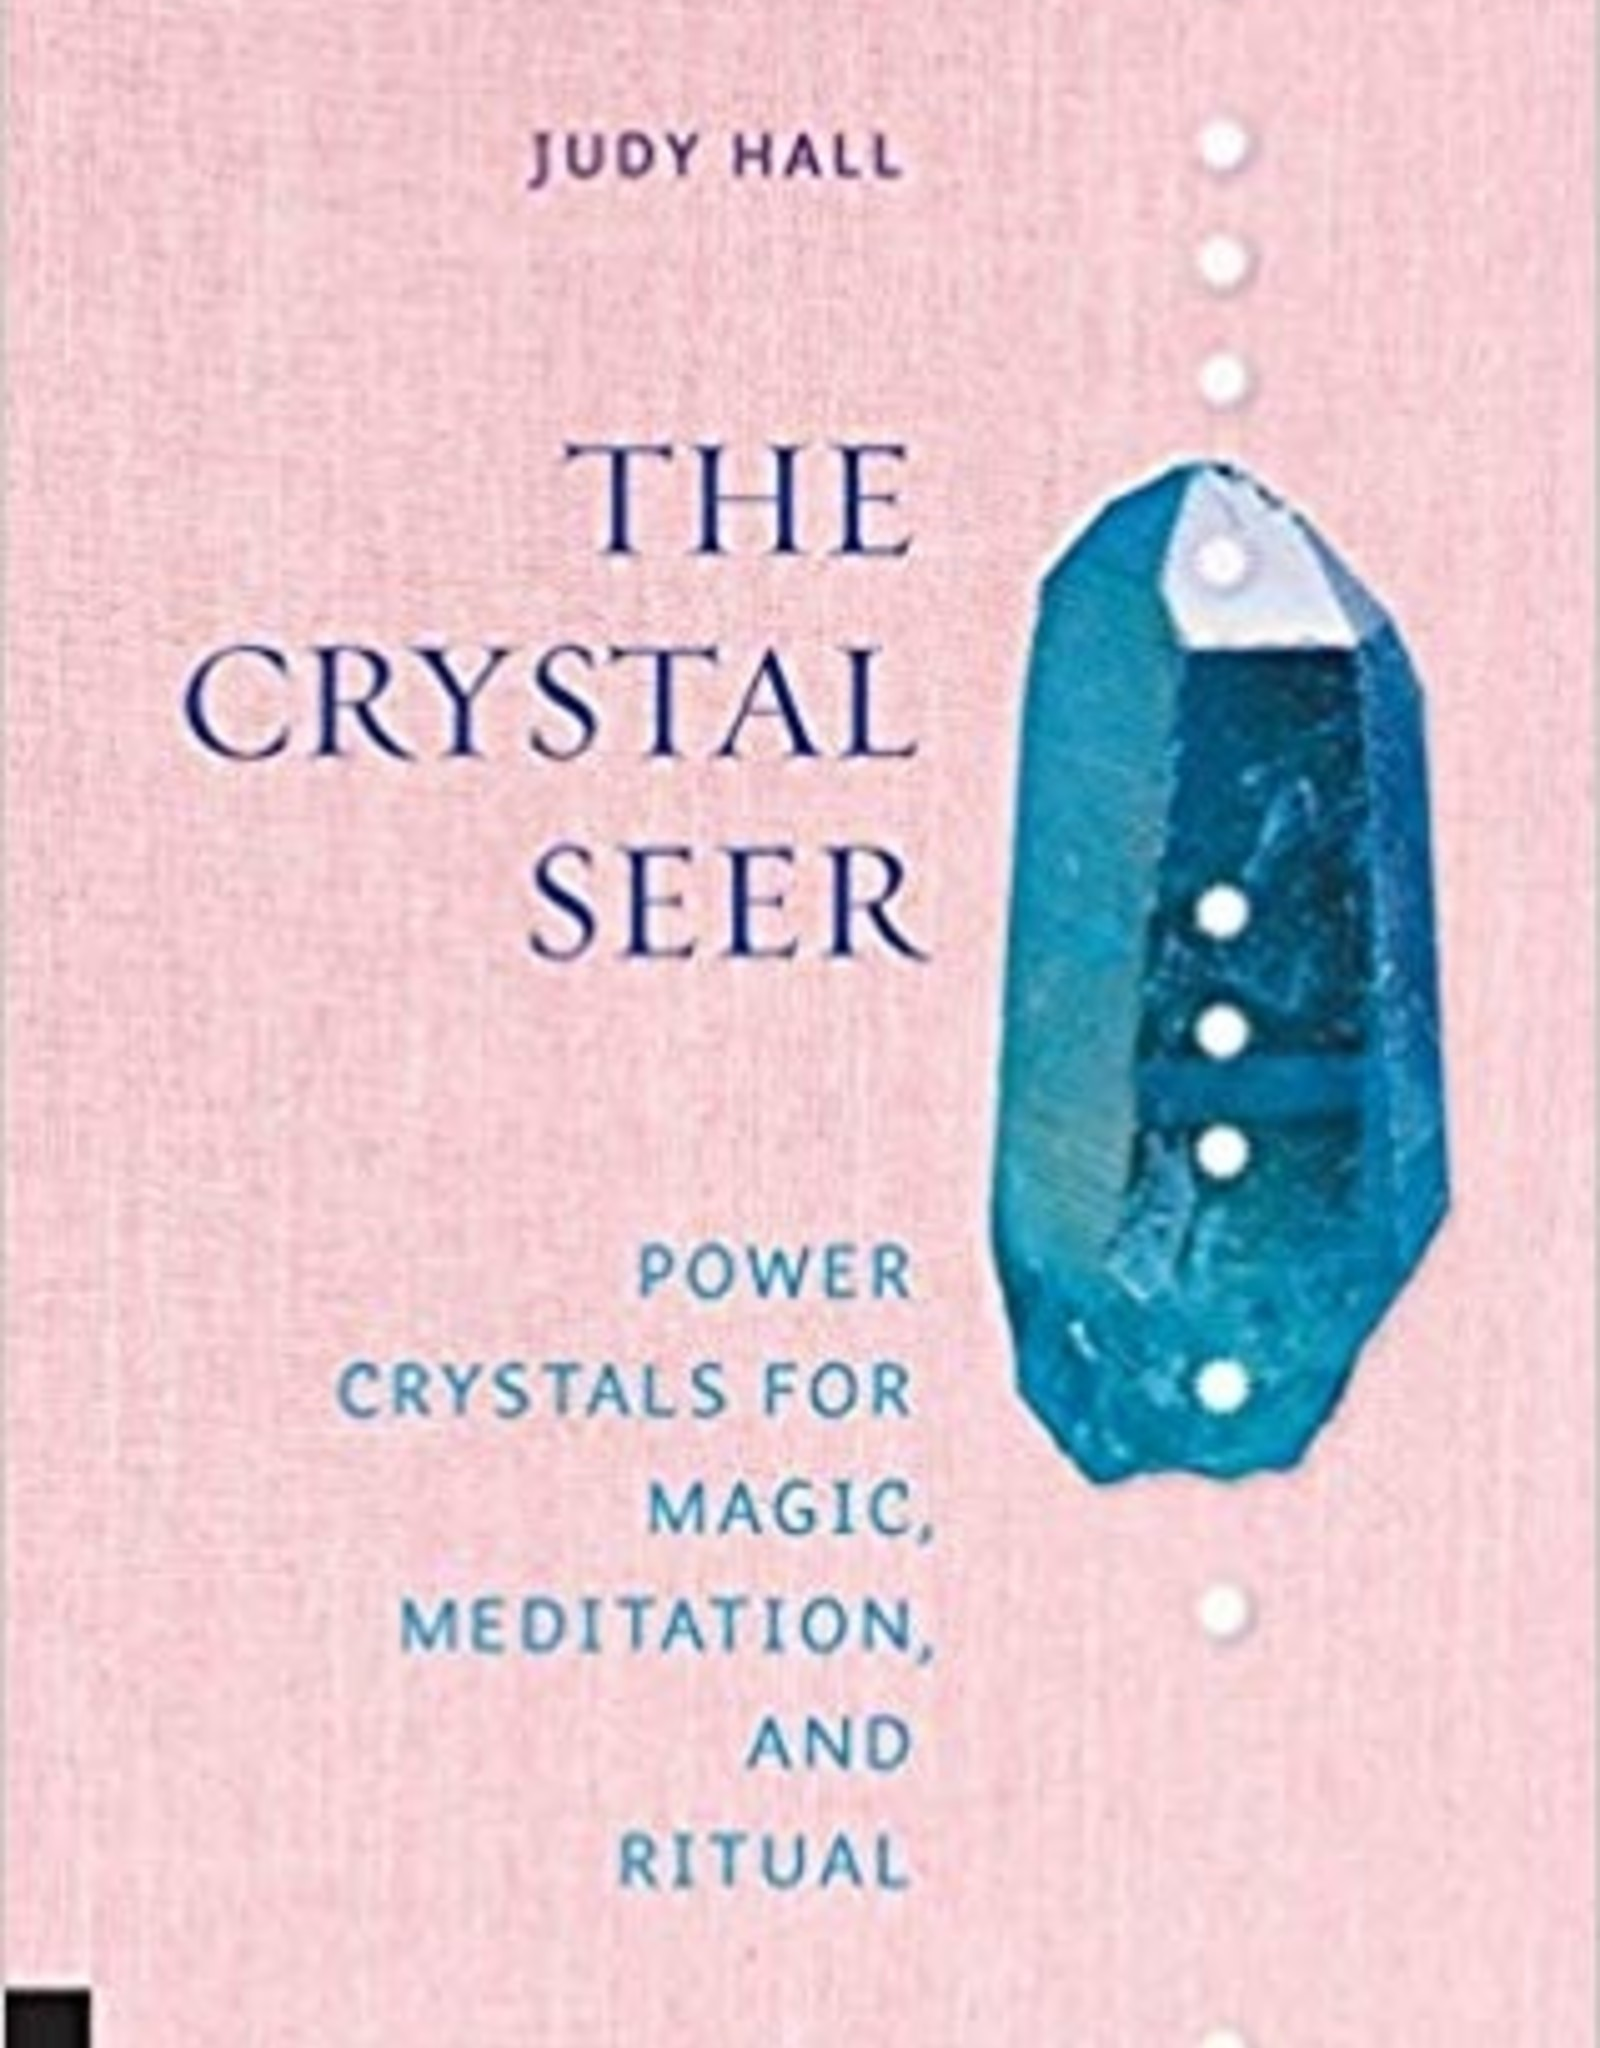 Quarto Knows Publishing The Crystal Seer: Power Crystals for Magic, Meditation & Ritual